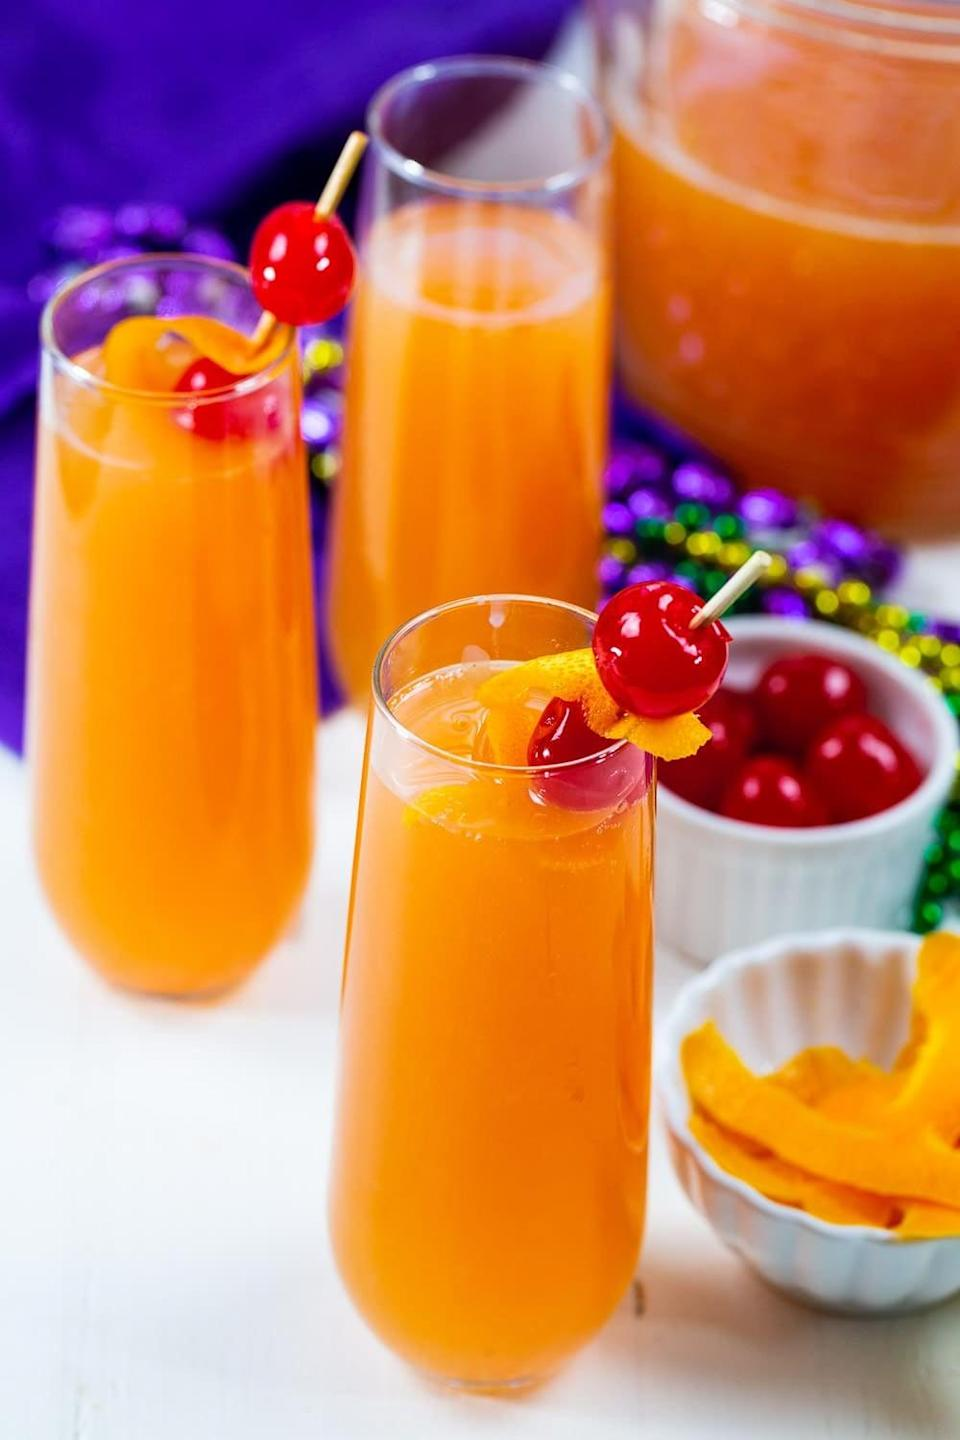 """<p>Kick off Mardi Gras the right when you whip up these hurricane mimosas. Complete with rum, passion fruit juice, grenadine, orange juice, and champagne, these are sure to get the party started. Just add beads!</p> <p><strong>Get the recipe</strong>: <a href=""""https://spicysouthernkitchen.com/hurricane-mimosas/"""" class=""""link rapid-noclick-resp"""" rel=""""nofollow noopener"""" target=""""_blank"""" data-ylk=""""slk:hurricane mimosas"""">hurricane mimosas</a></p>"""